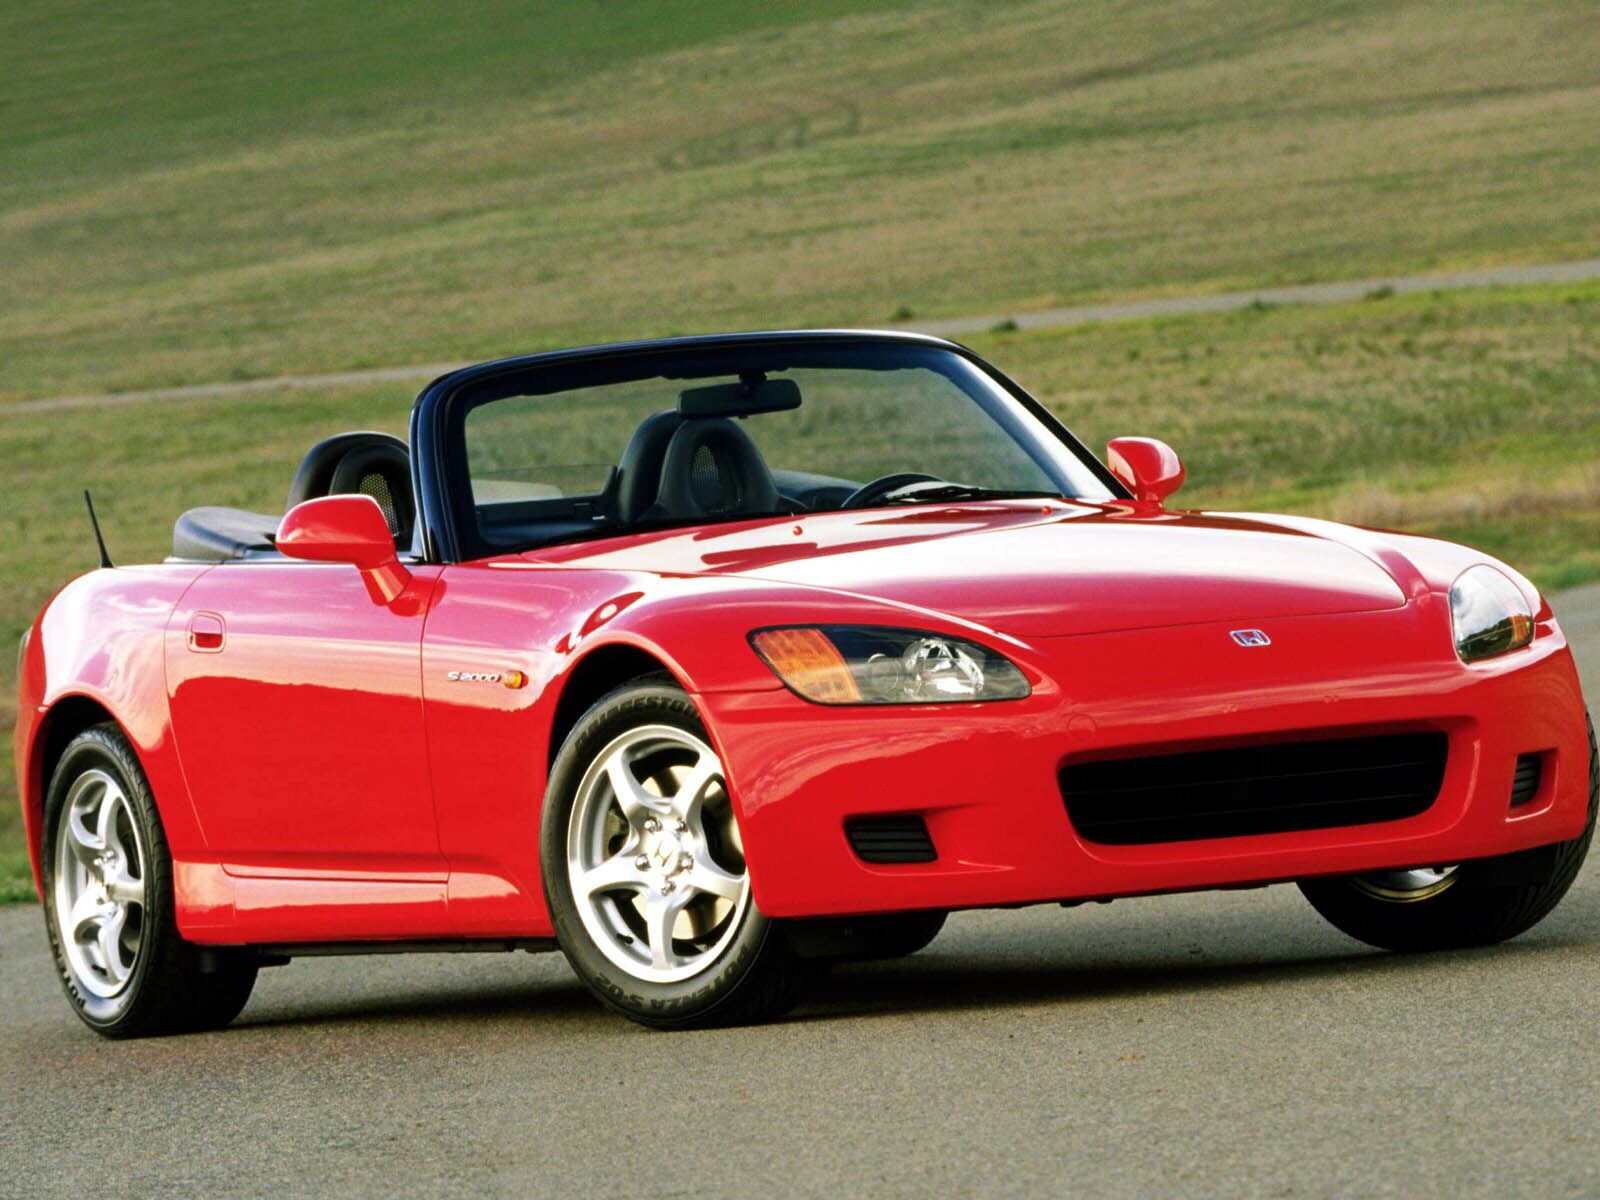 Cool Car Wallpapers Honda S2000